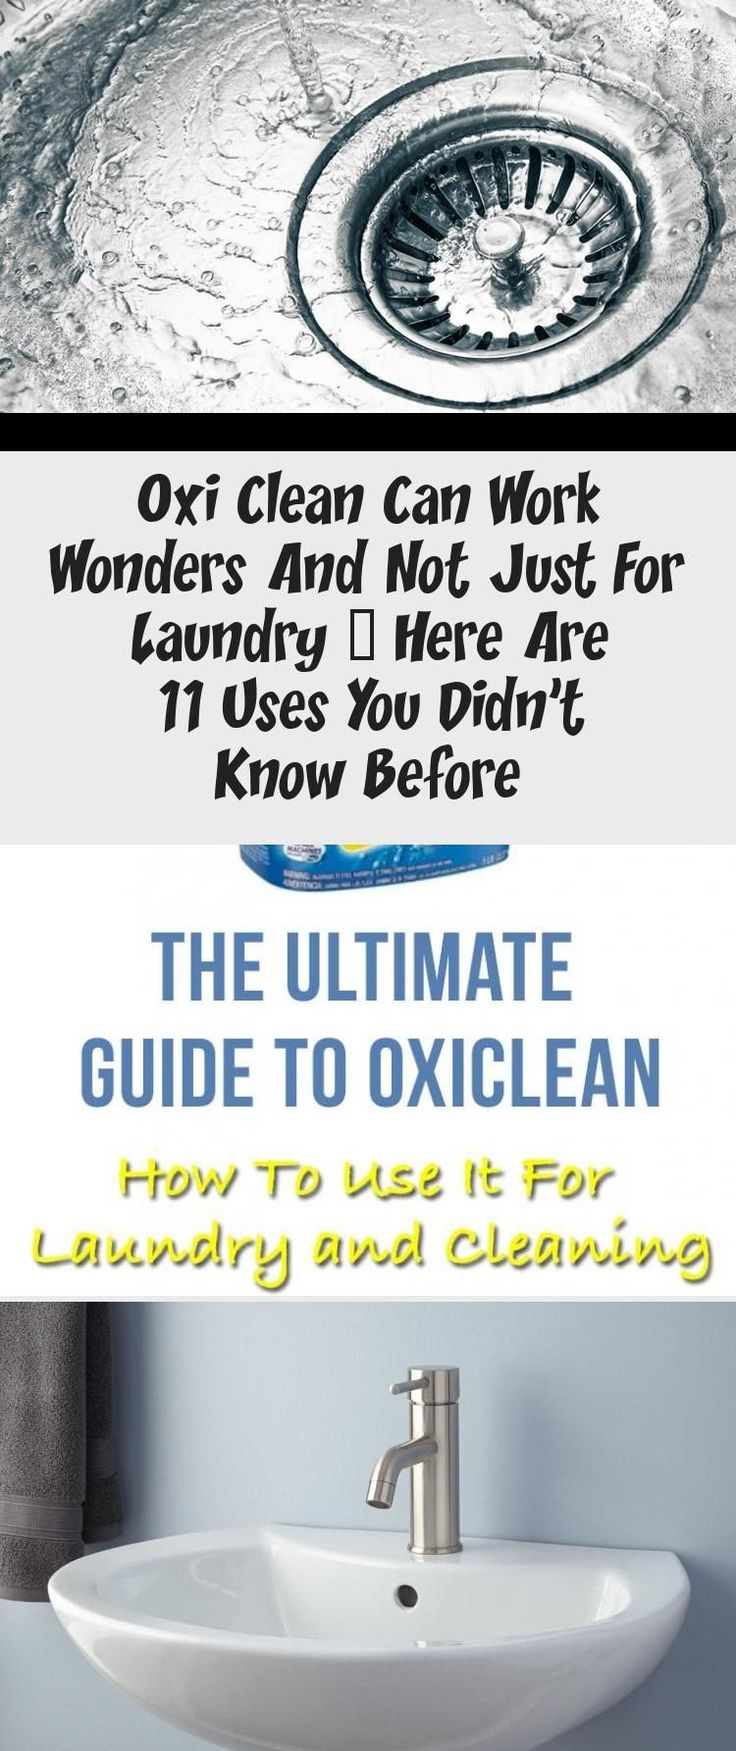 Here is the ultimate guide to oxiclean the product used